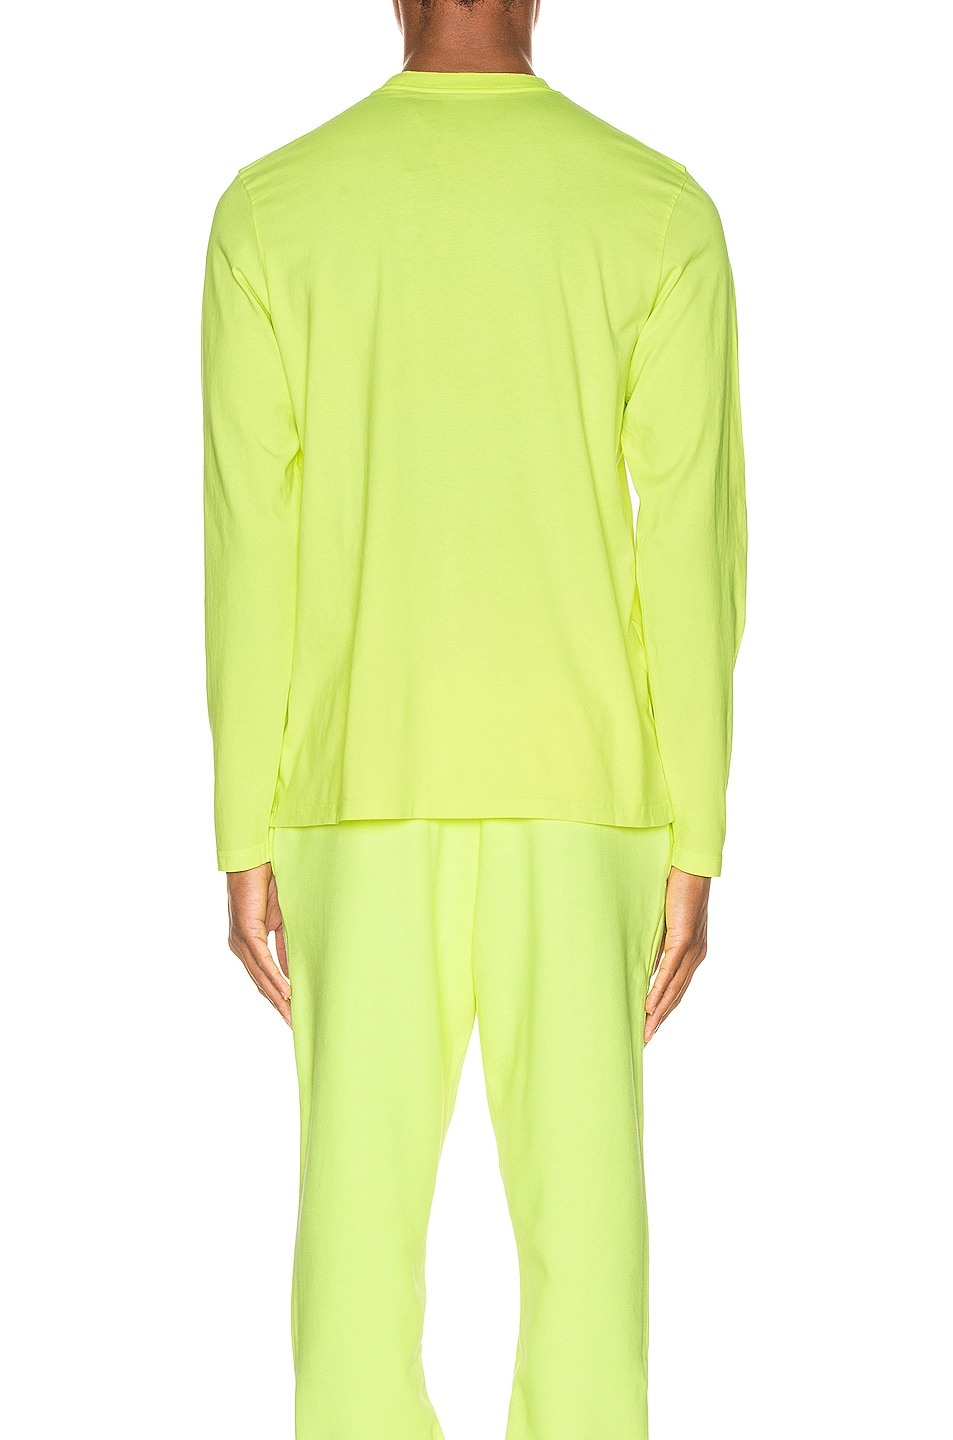 Image 3 of Martine Rose Long Sleeve Tee in in Fluoro